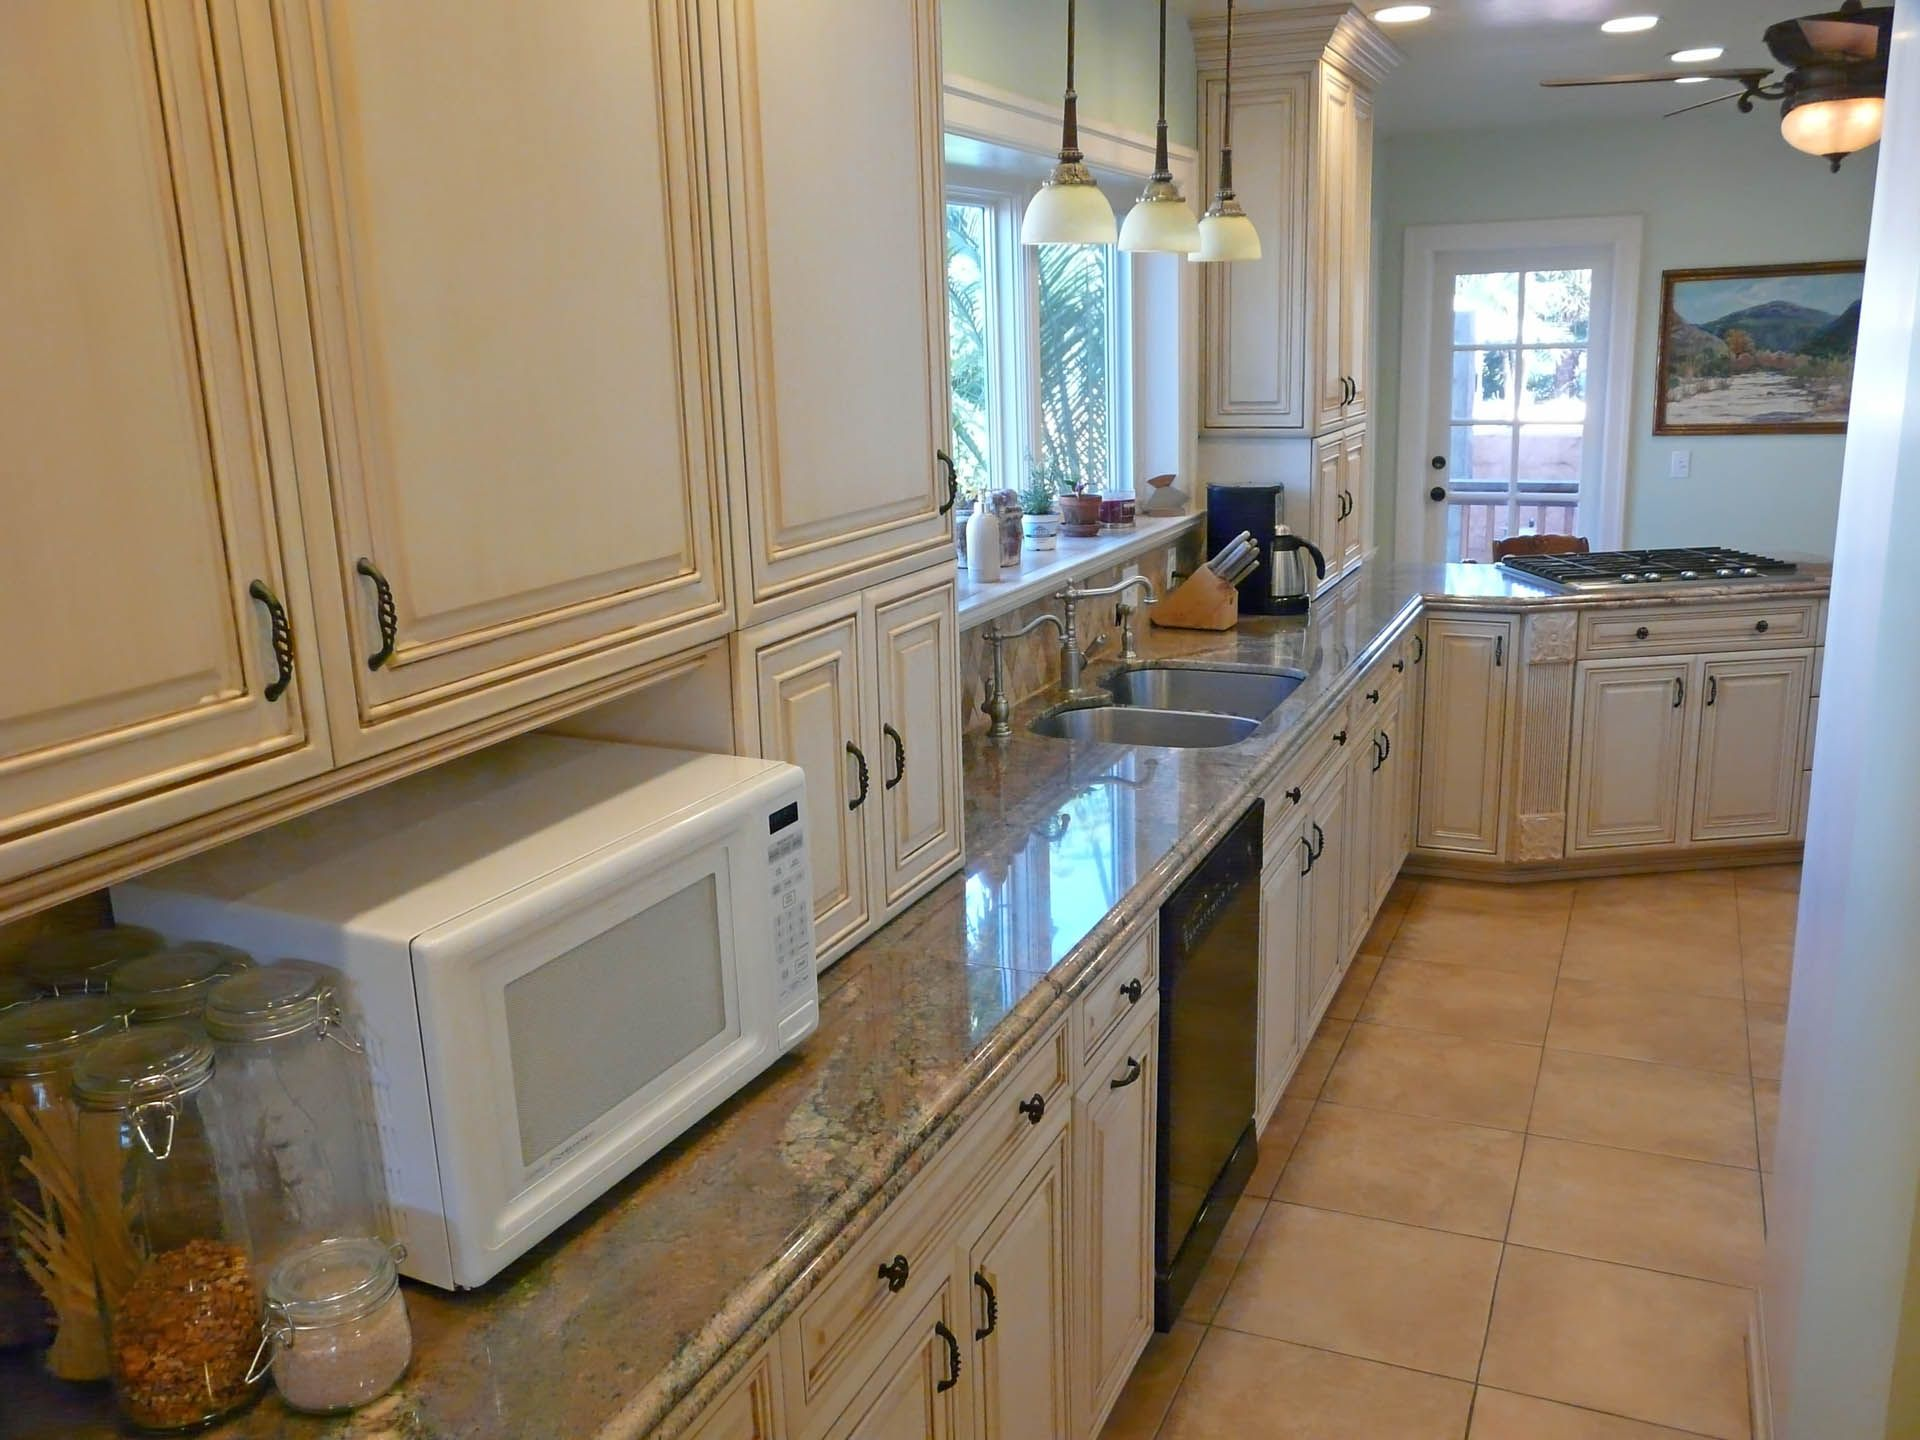 Kitchen Design Basics Magnificent Kitchen View From Laundry Room Areakitchen Design & Remodeling Decorating Design